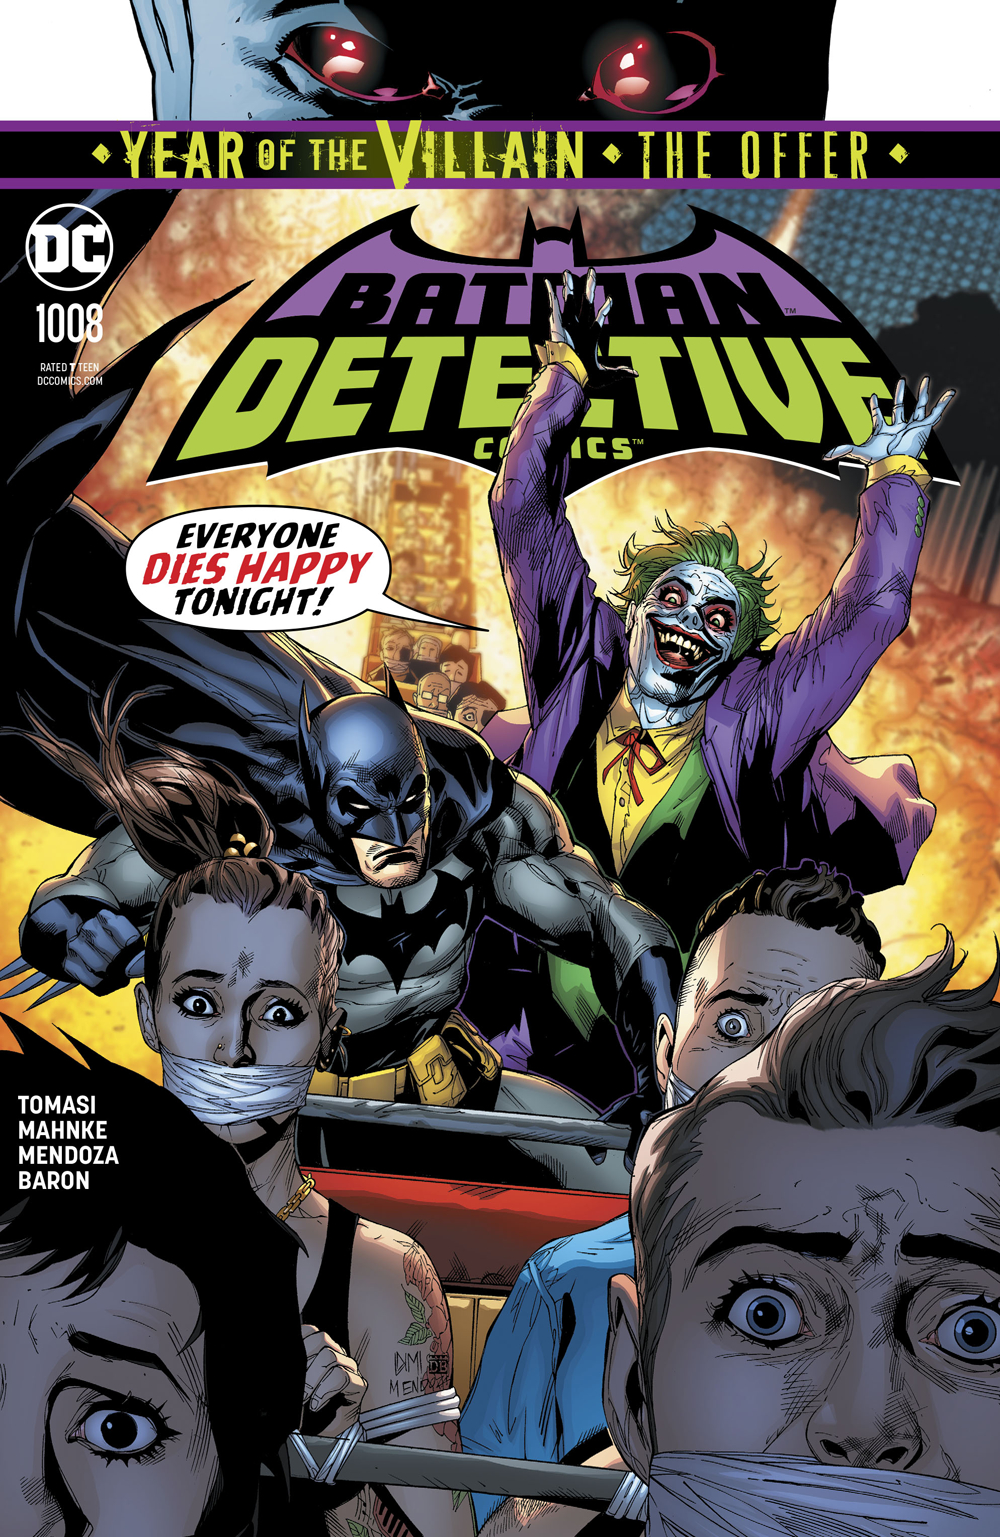 DETECTIVE COMICS #1008 YOTV THE OFFER